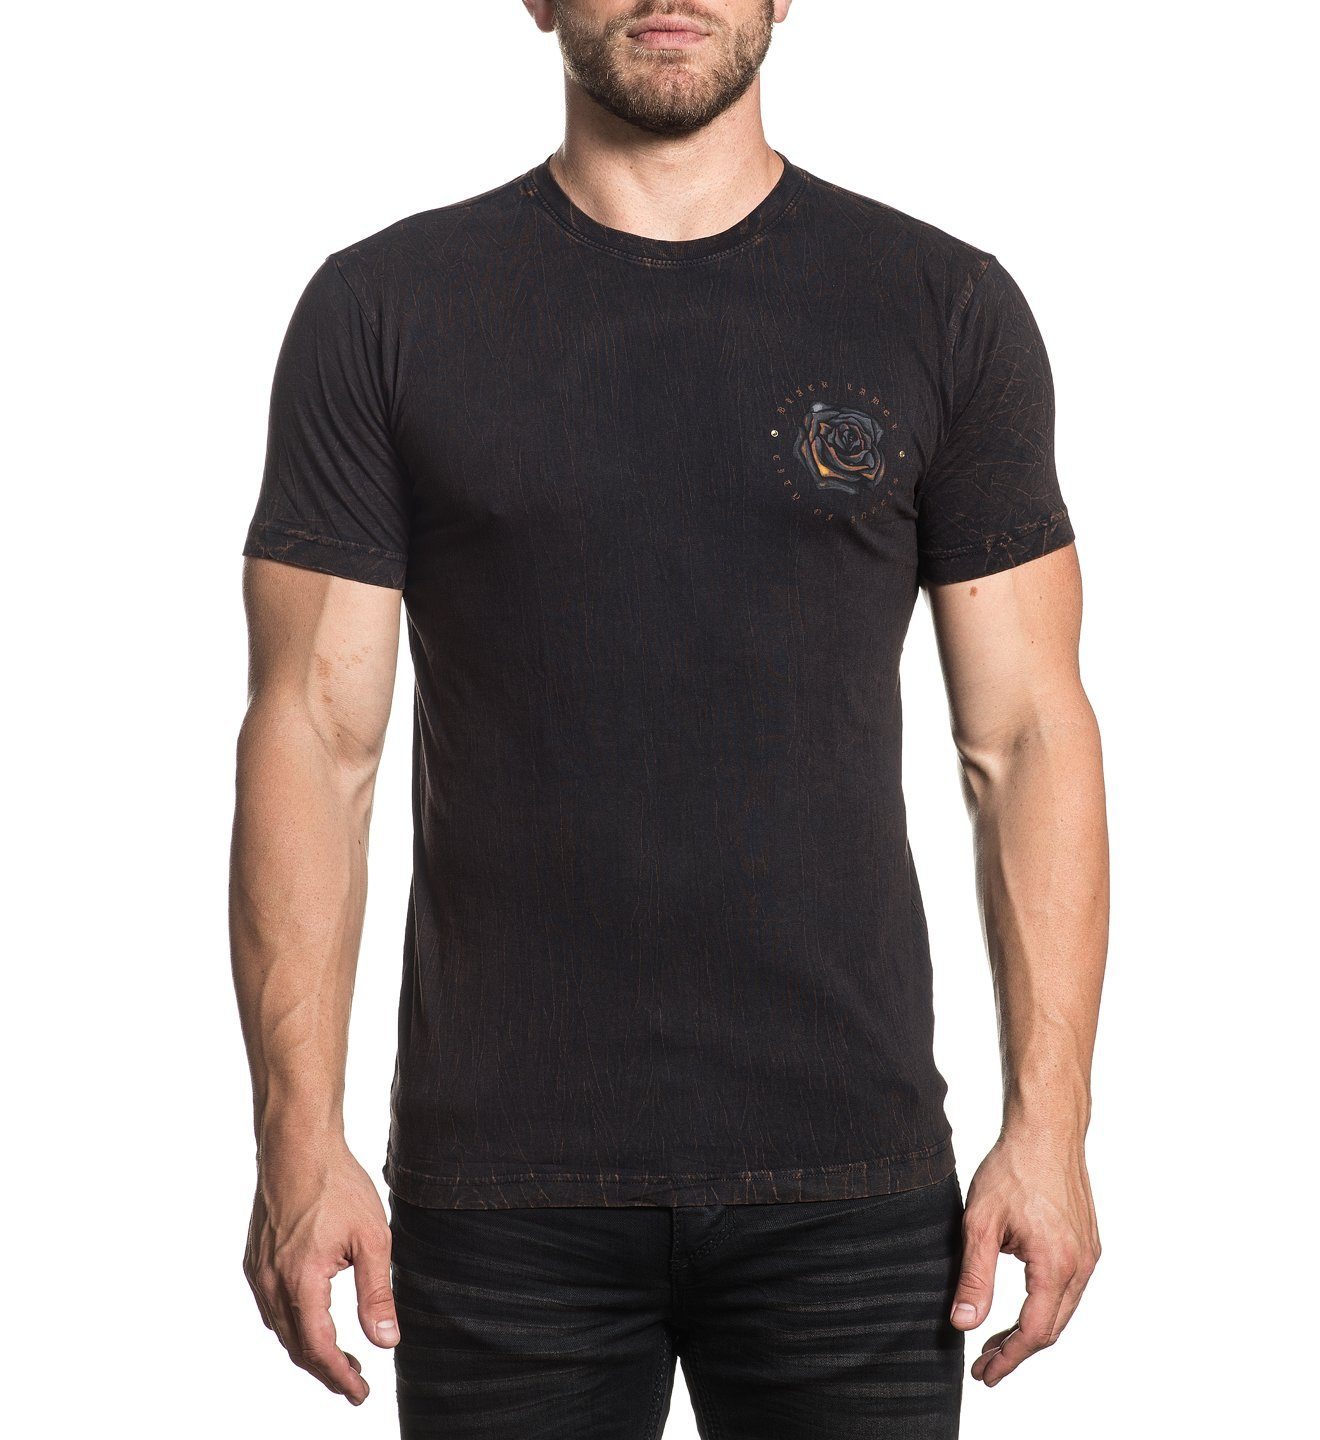 Forged In Faith - Mens Short Sleeve Tees - Affliction Clothing